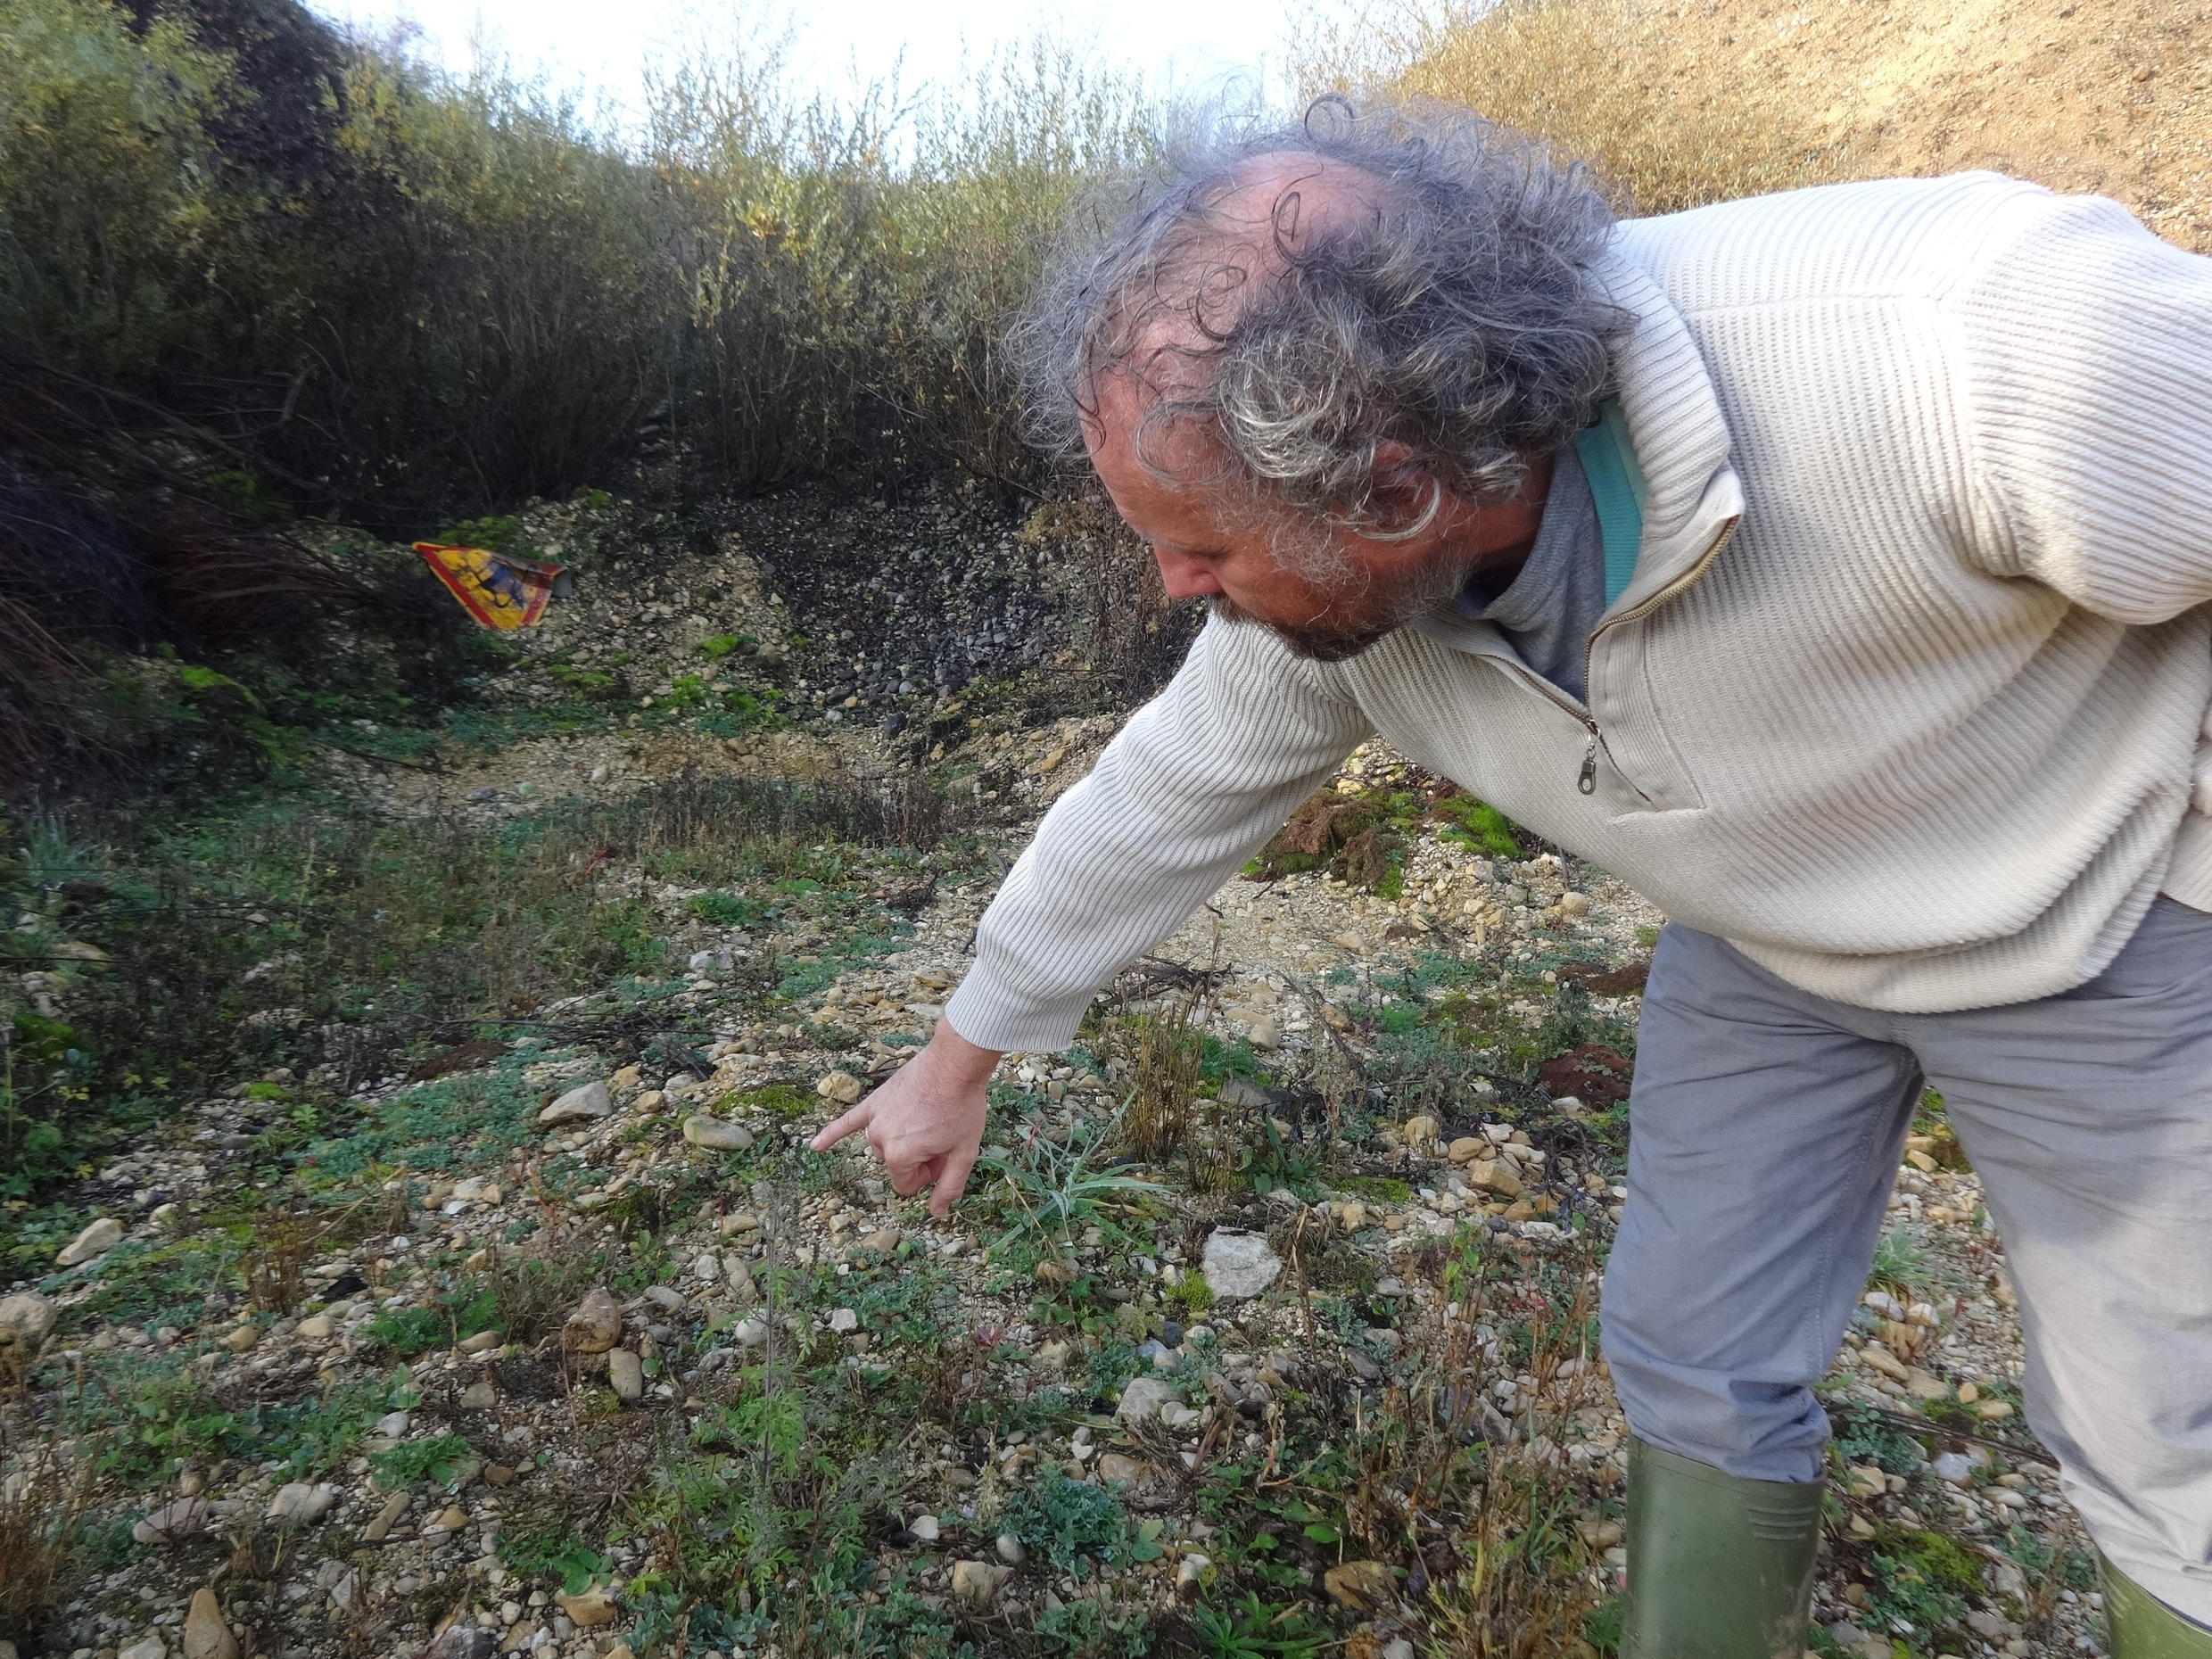 Botanist Bruno Chauvel points out a ragweed plant in a gravel quarry north of Dijon, 12 November 2015